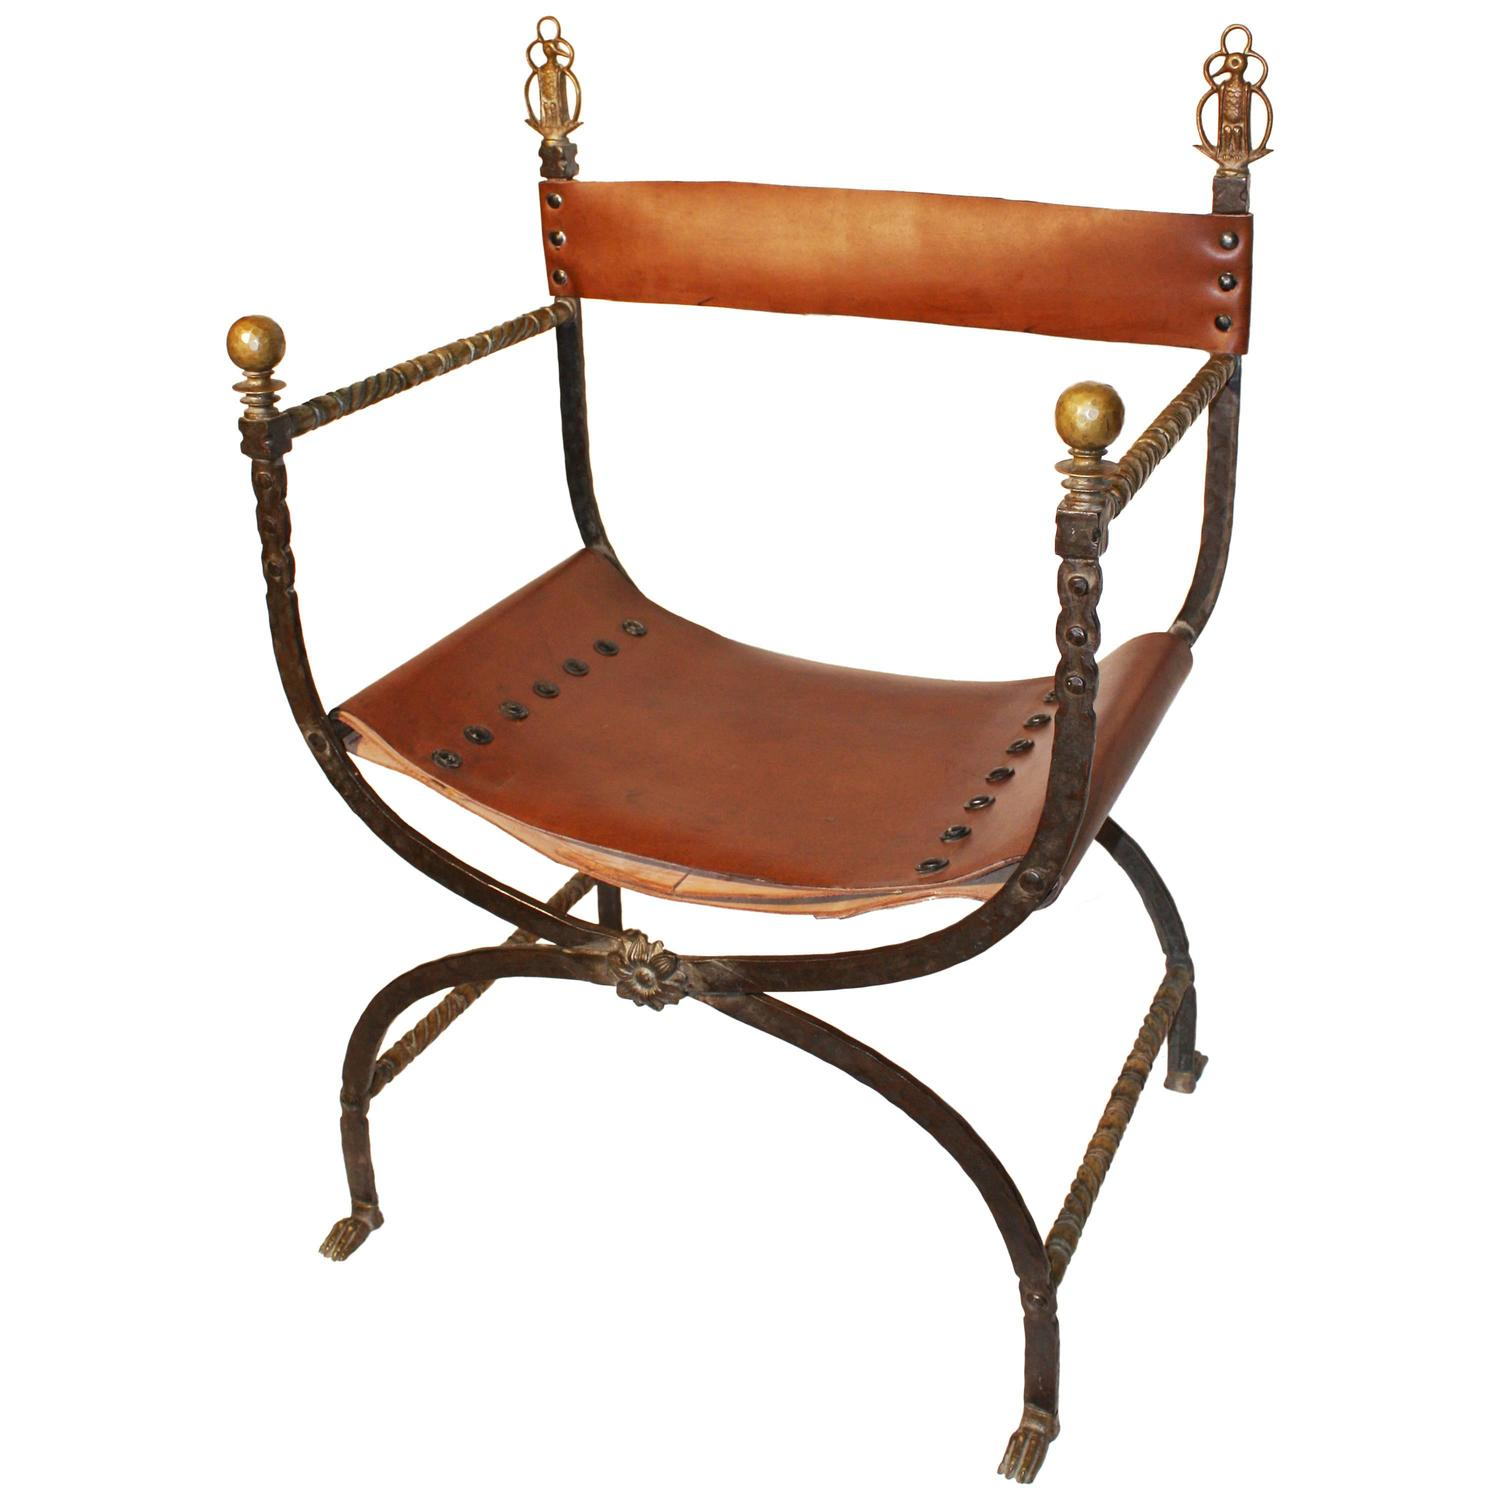 Bronze chairs 89 for sale at 1stdibs